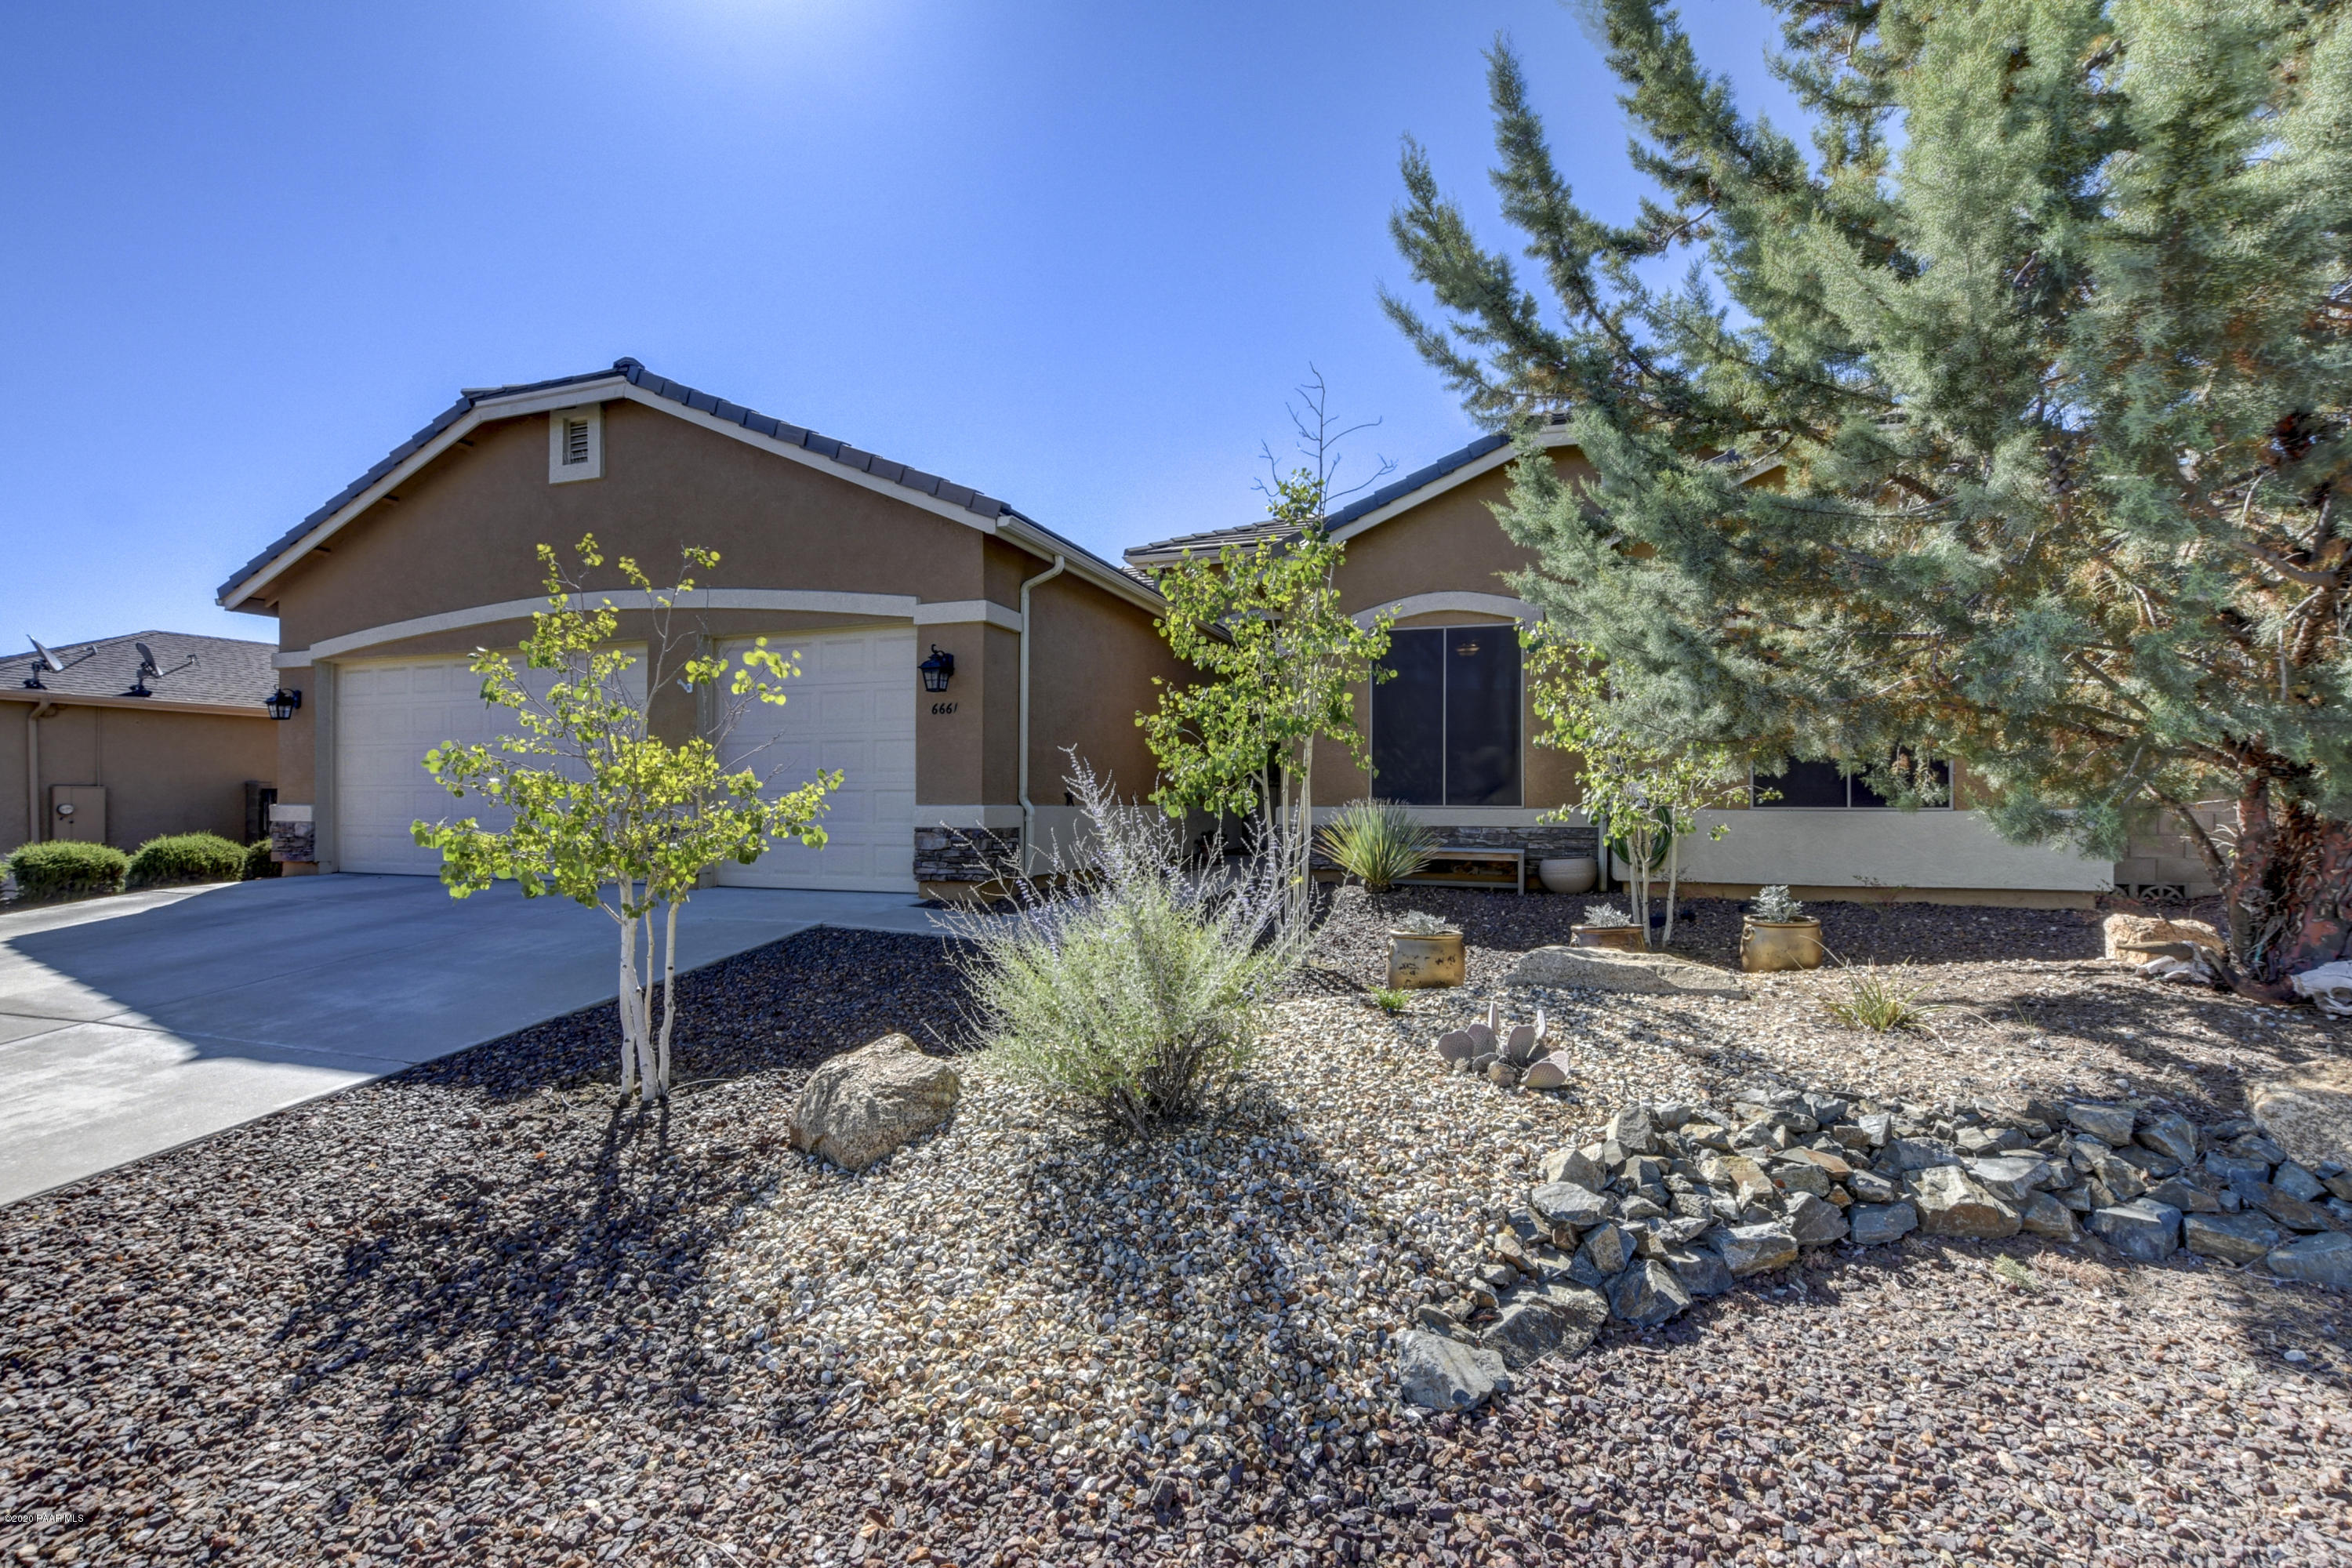 Photo of 6661 Brighton, Prescott Valley, AZ 86314